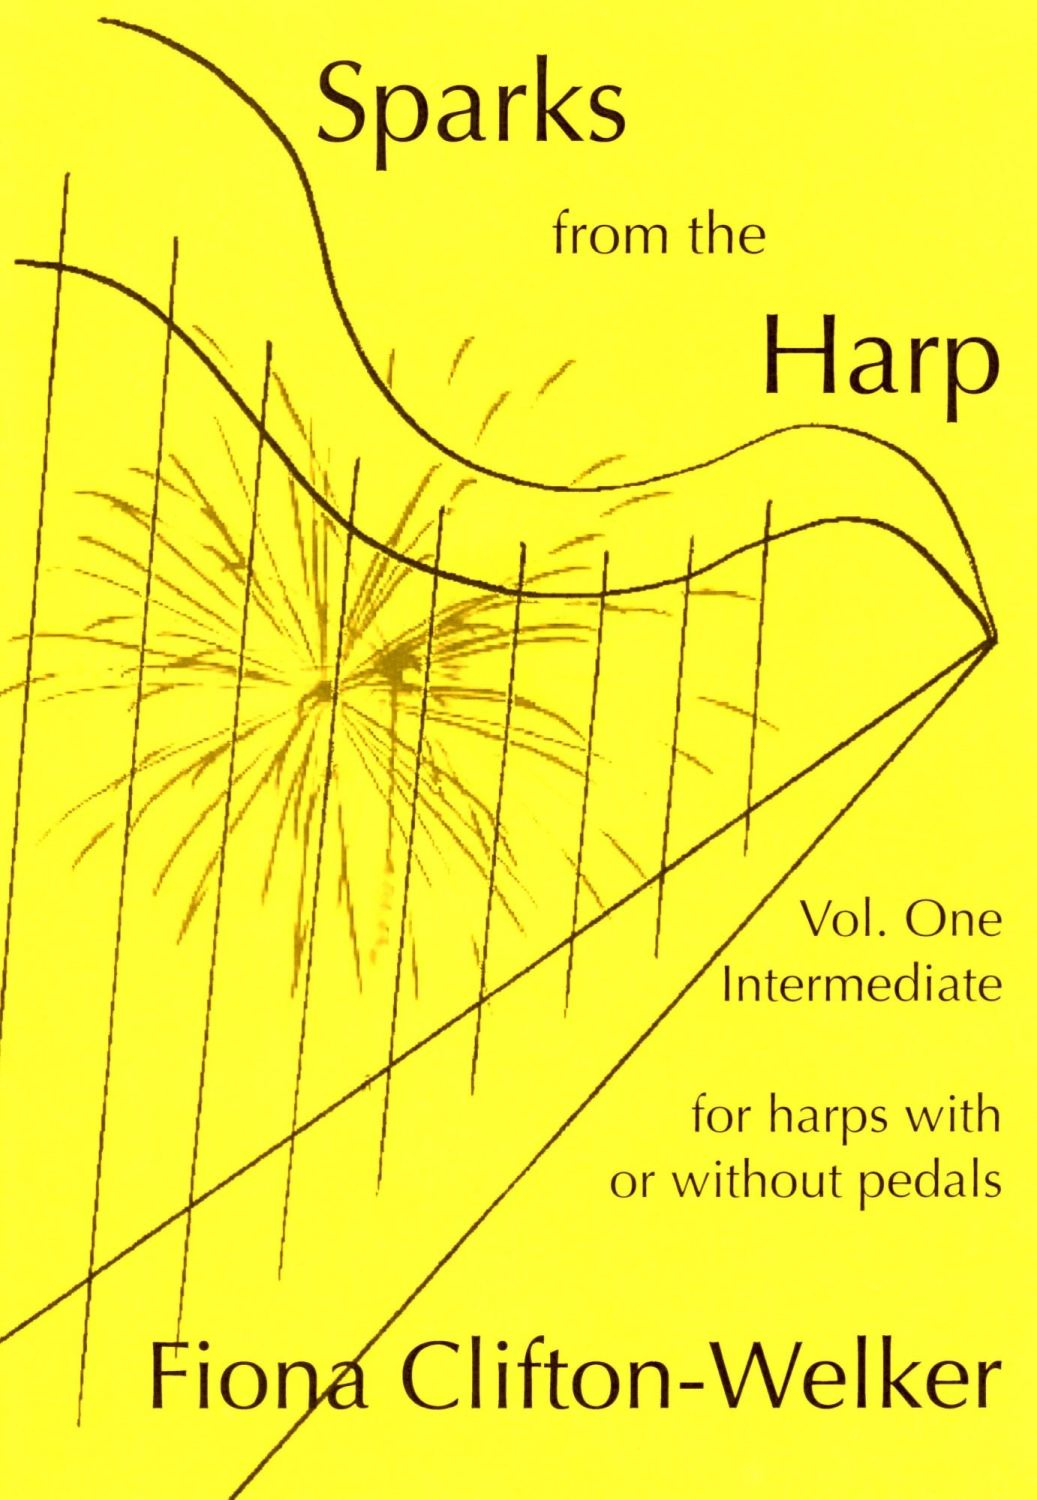 Sparks from the Harp: Volume 1 - Fiona Clifton-Welker